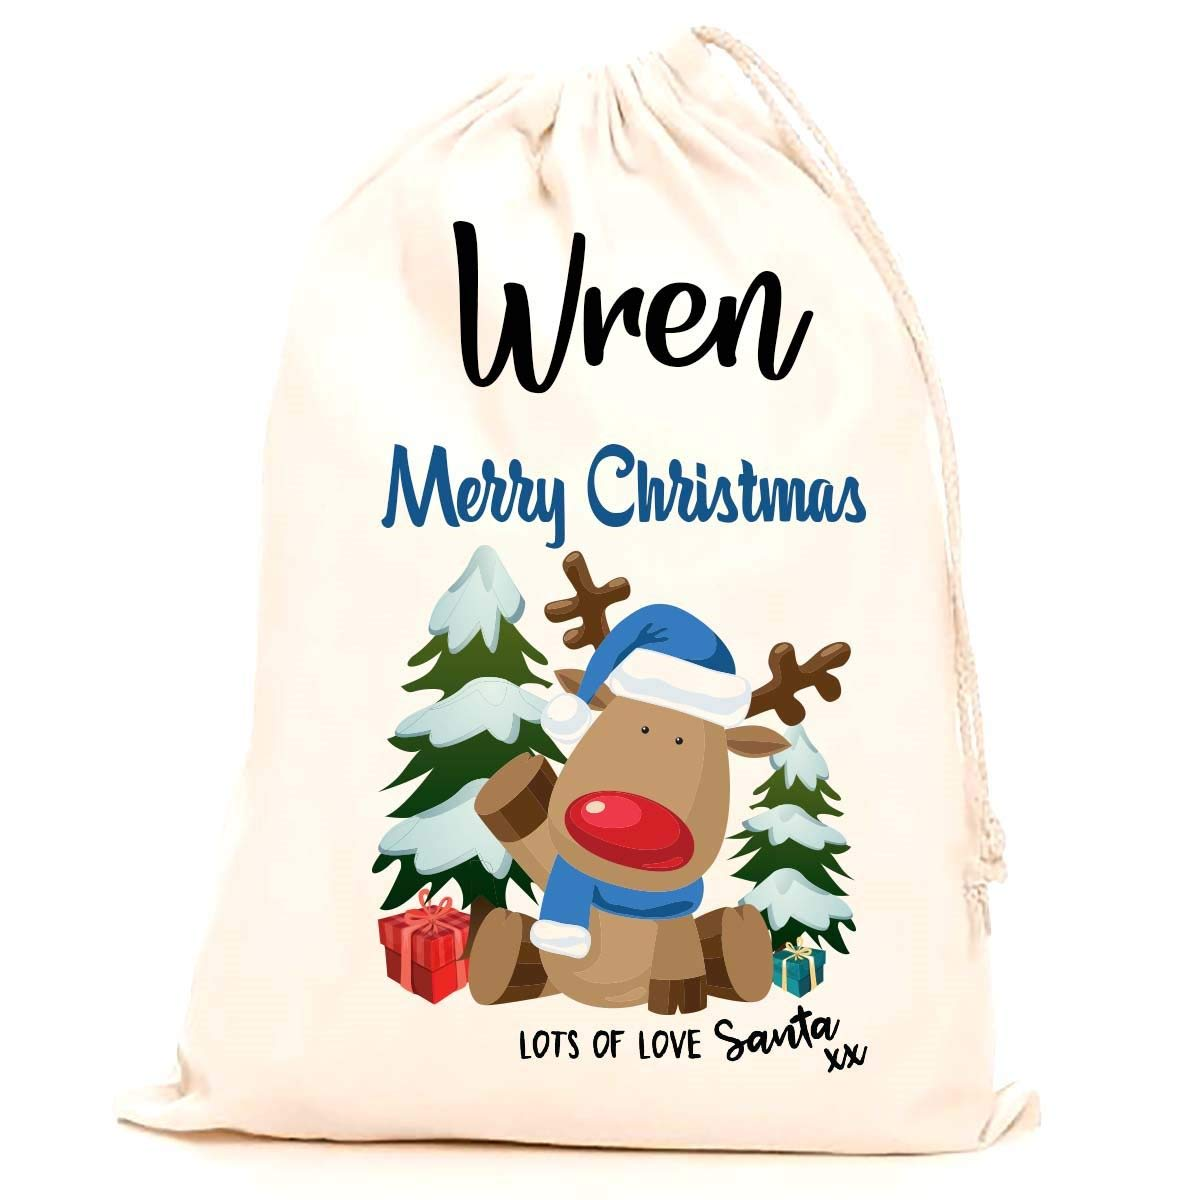 Treat Me Suite Wren personalised name Christmas santa sack, stocking printed with a blue reindeer (75x50cm) 100% Cotton Large. Children, Kids, making it the perfect keepsake xmas gift/present. CS Printing Limited